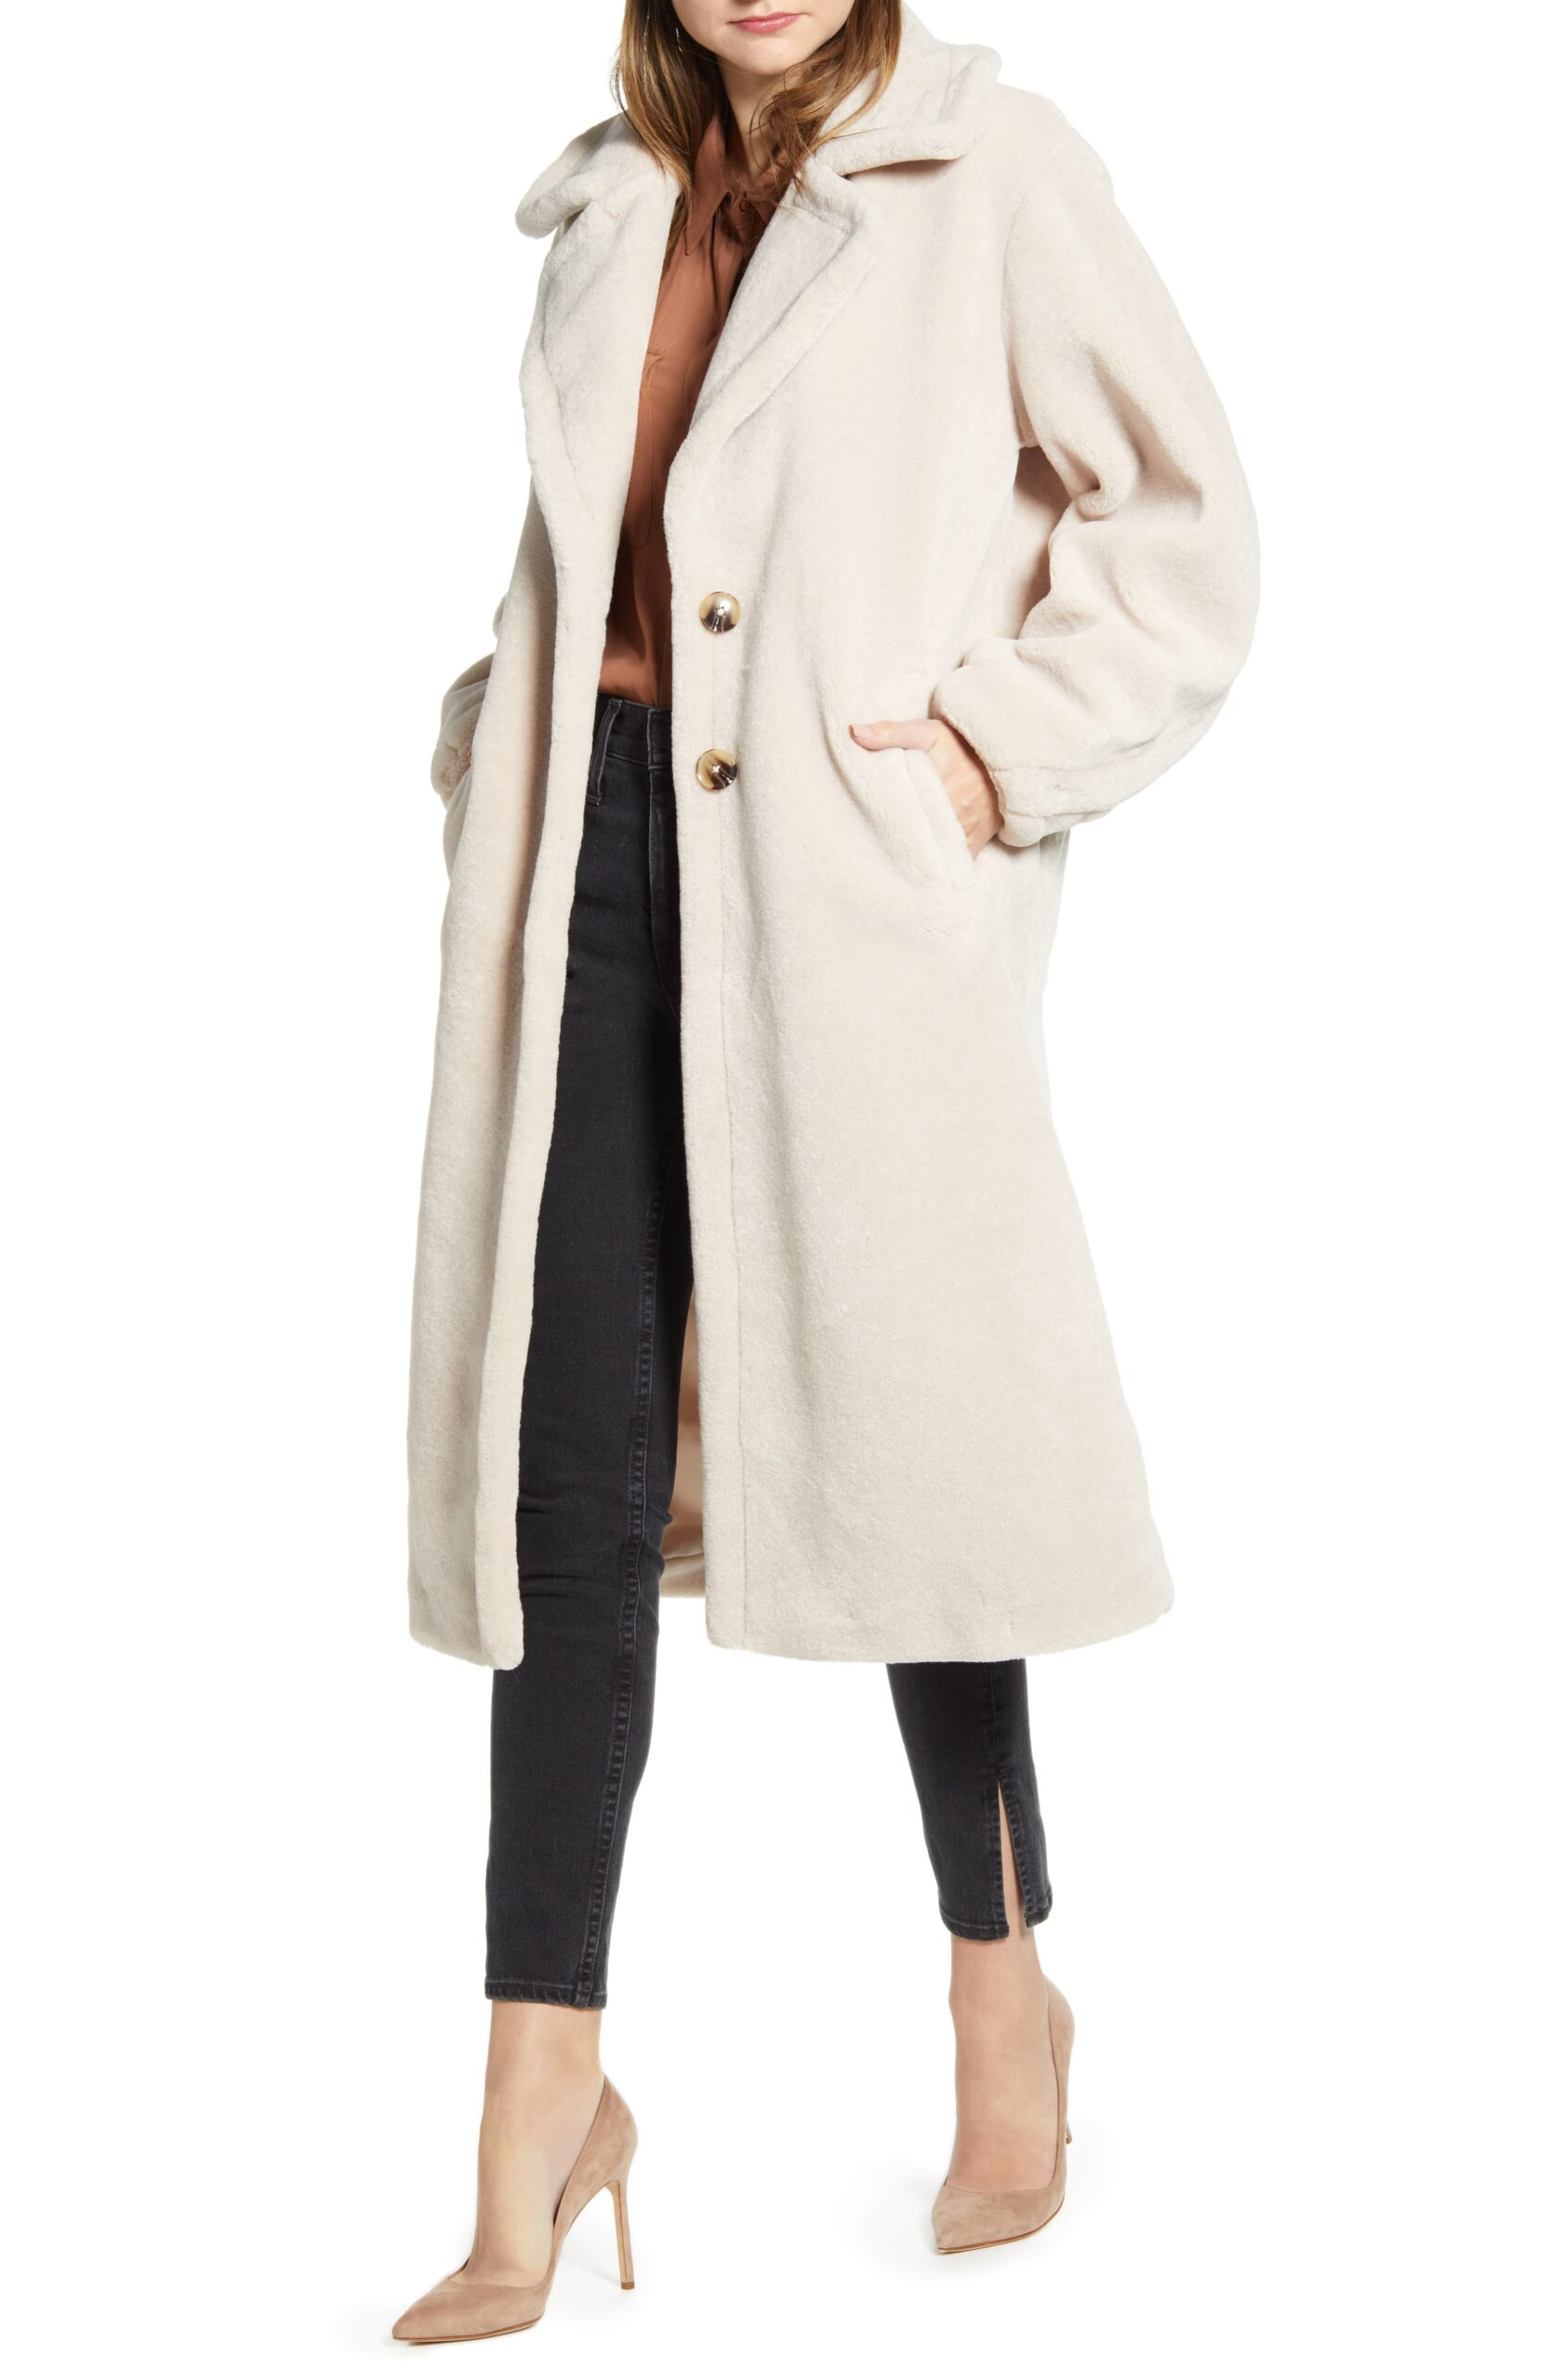 The Cutest Target Pajamas and Something Navy Faux Shearling Teddy Coat